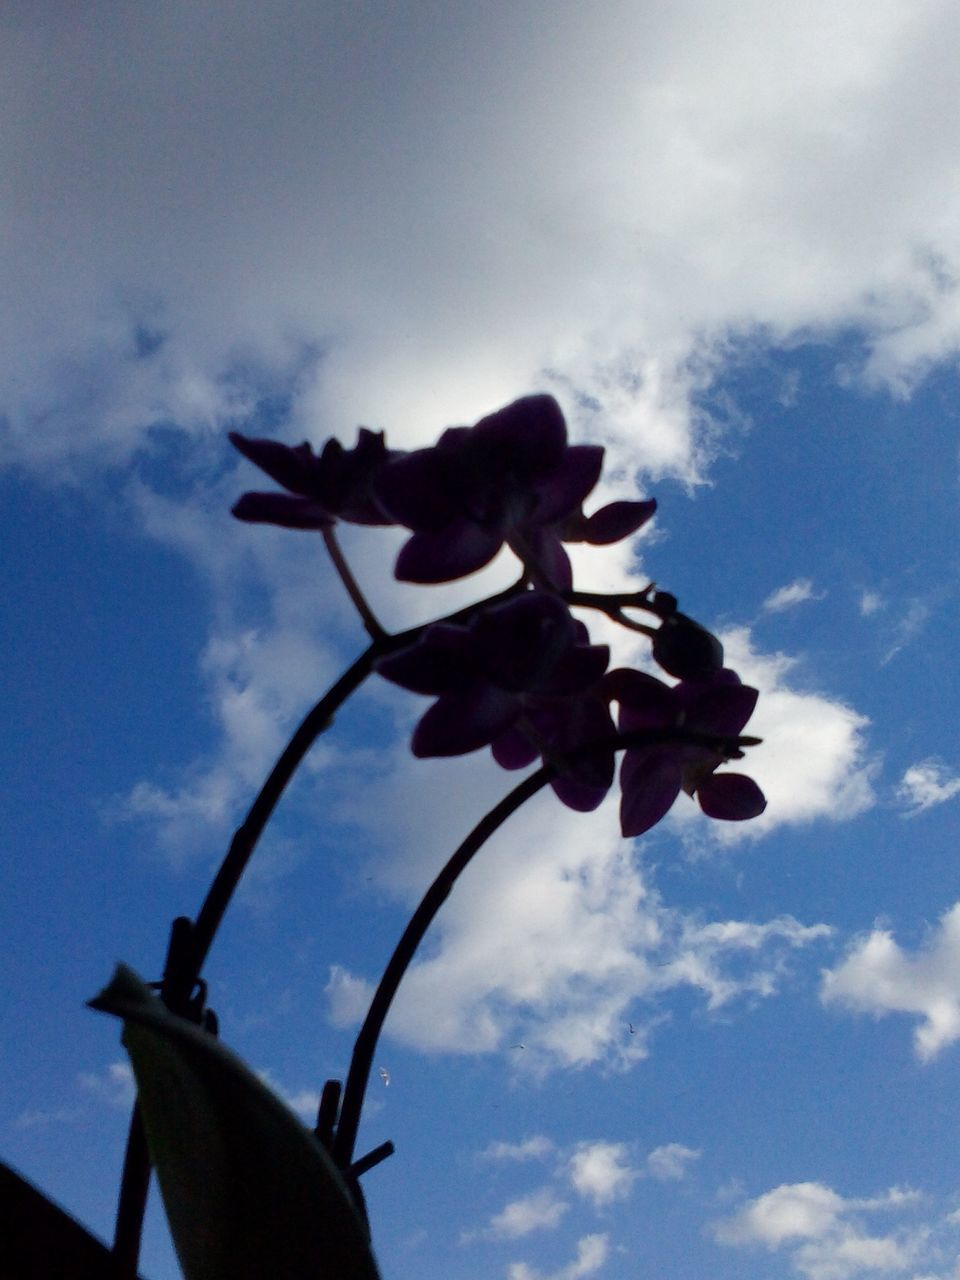 Low Angle View Of Silhouette Flowers Blooming Against Sky